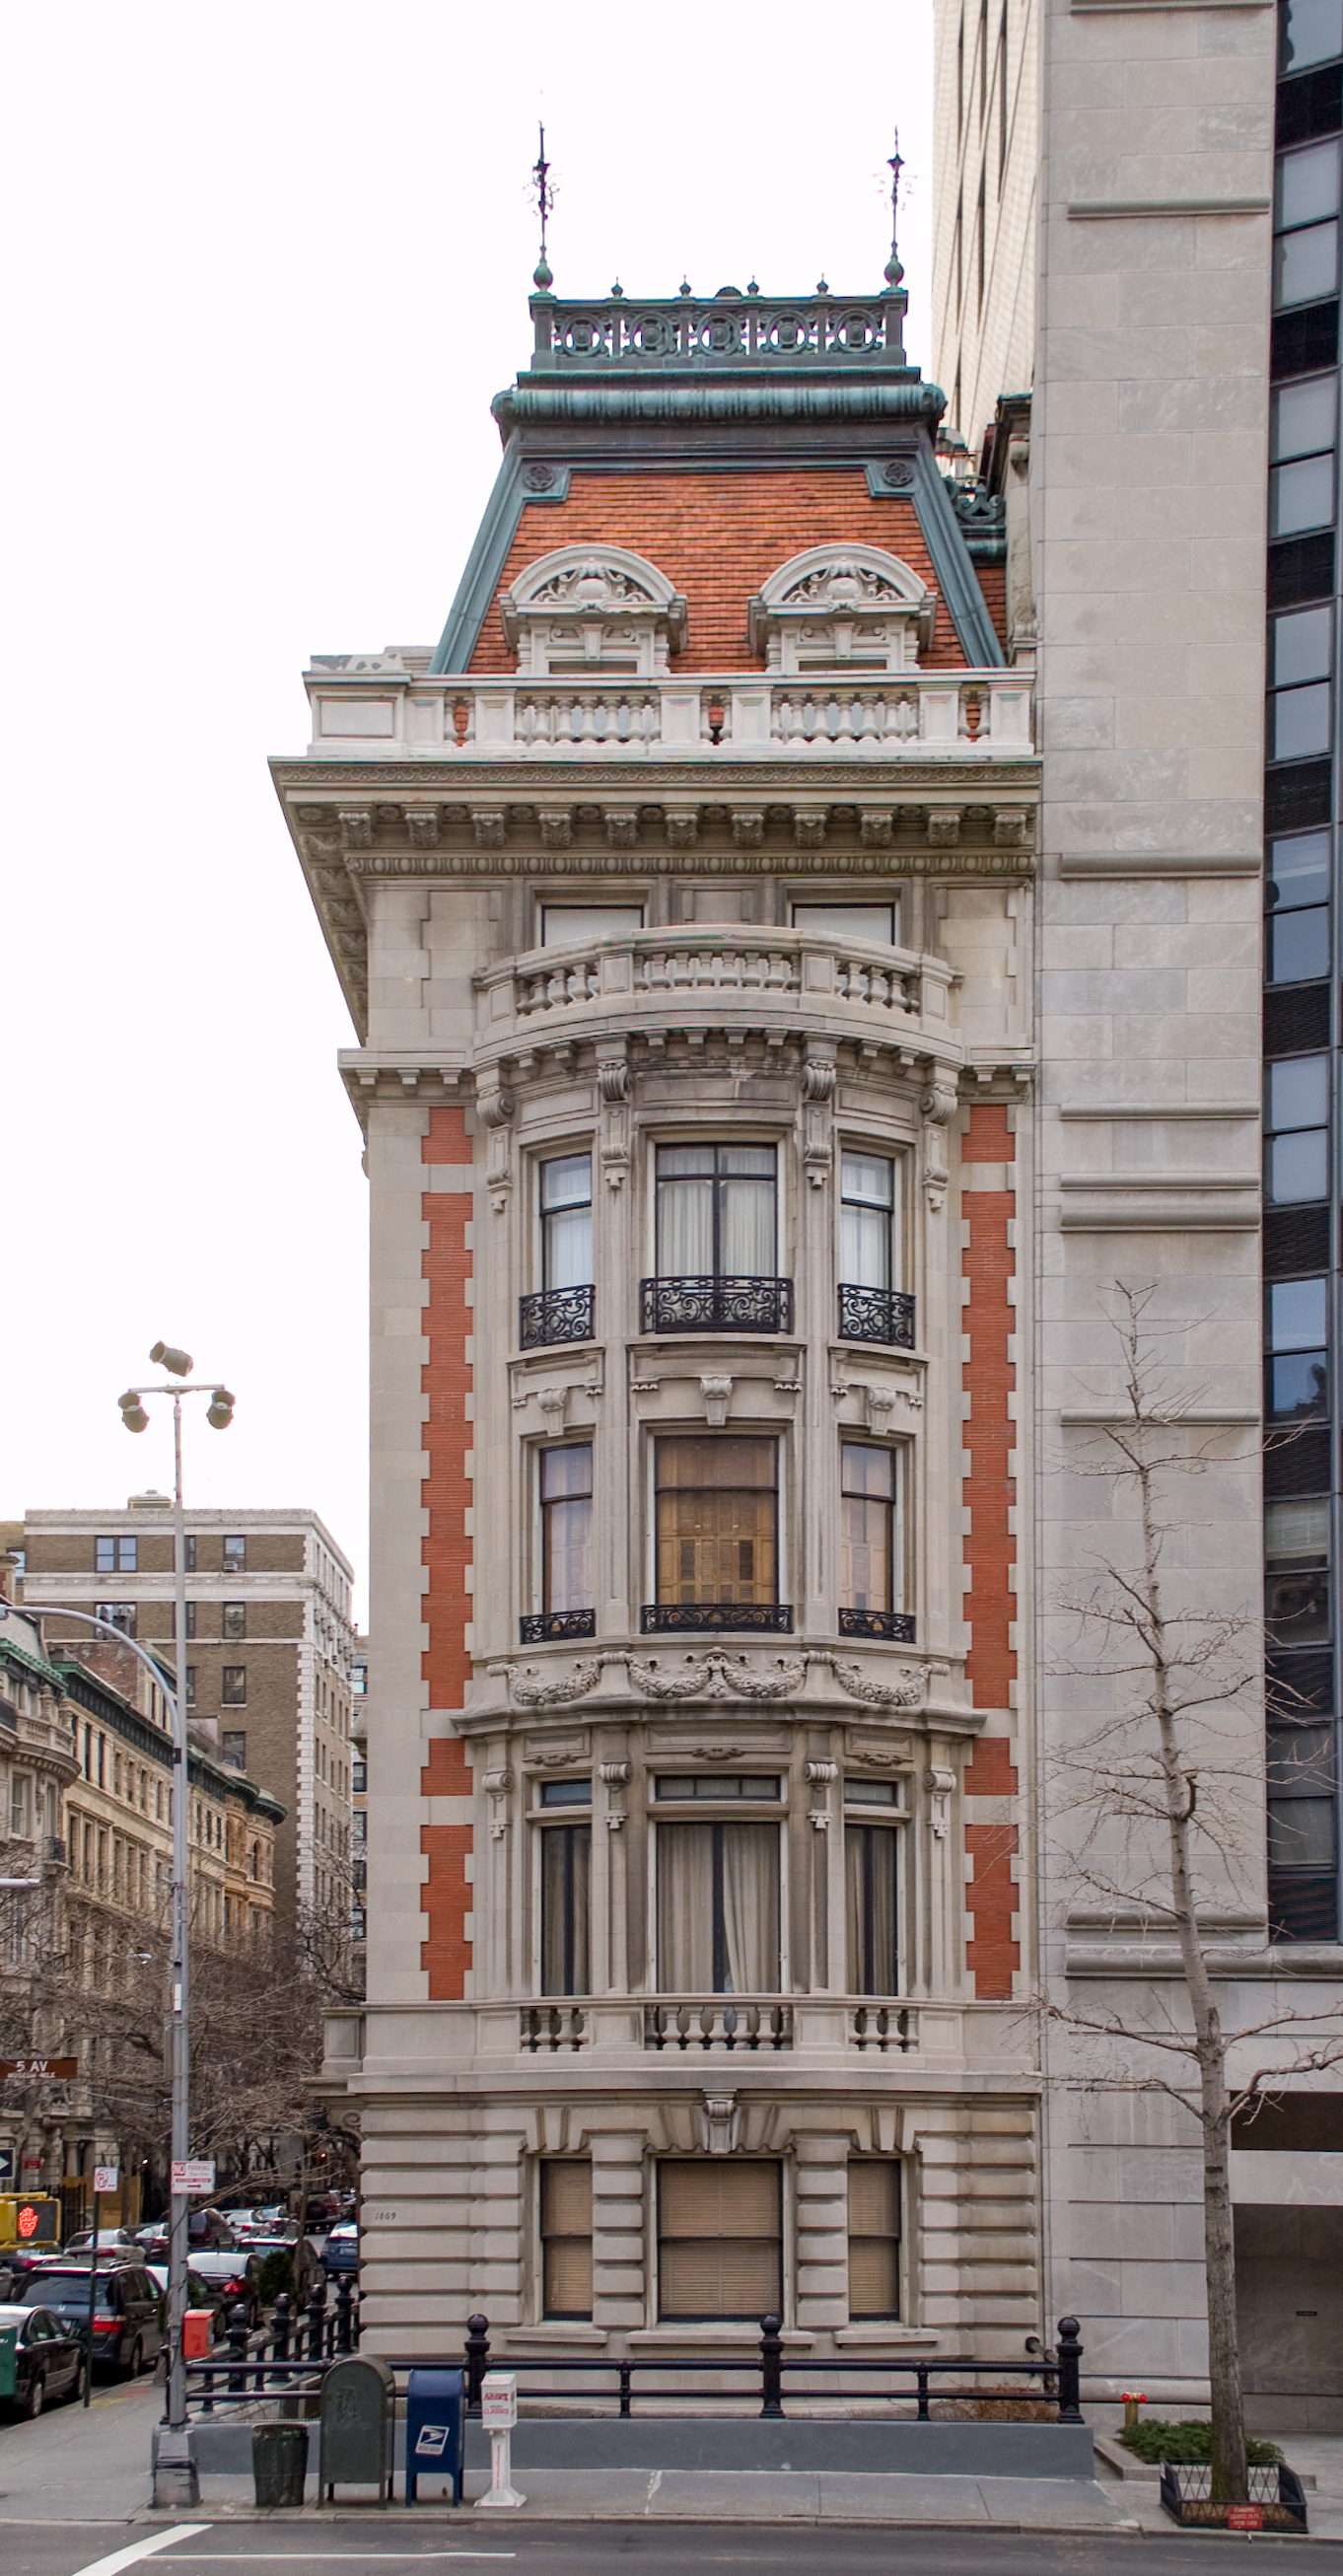 Facade of an historic mansion on 82nd street.